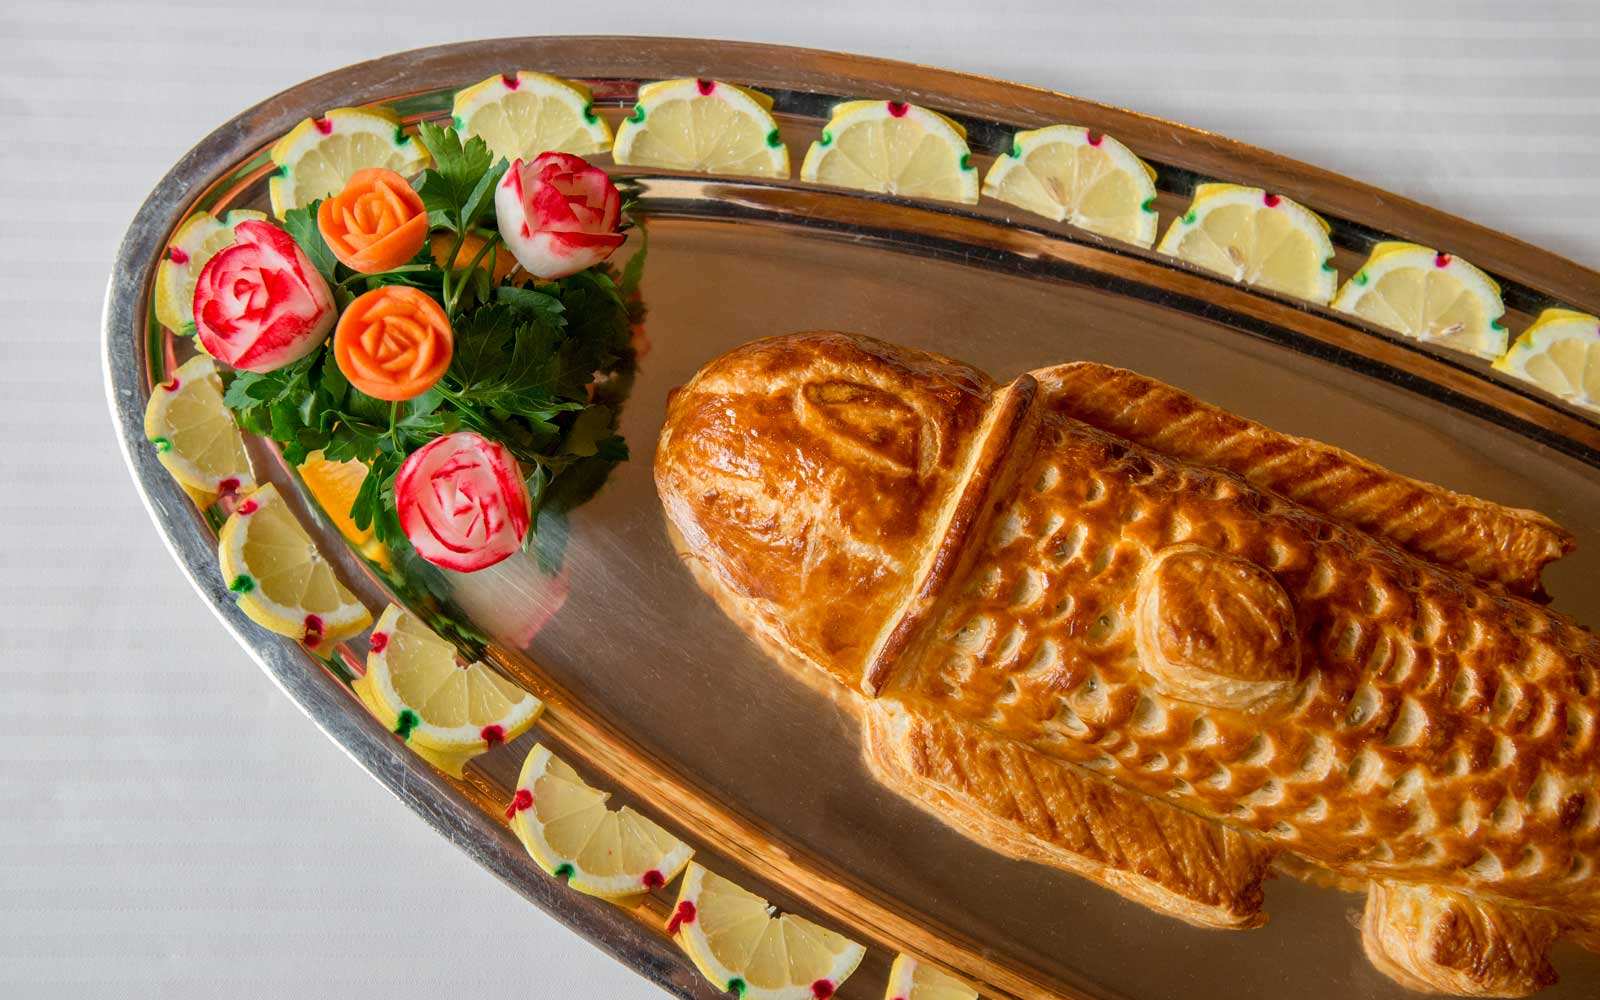 Fish in puff pastry at the Paul Bocuse restaurant in Lyon, France